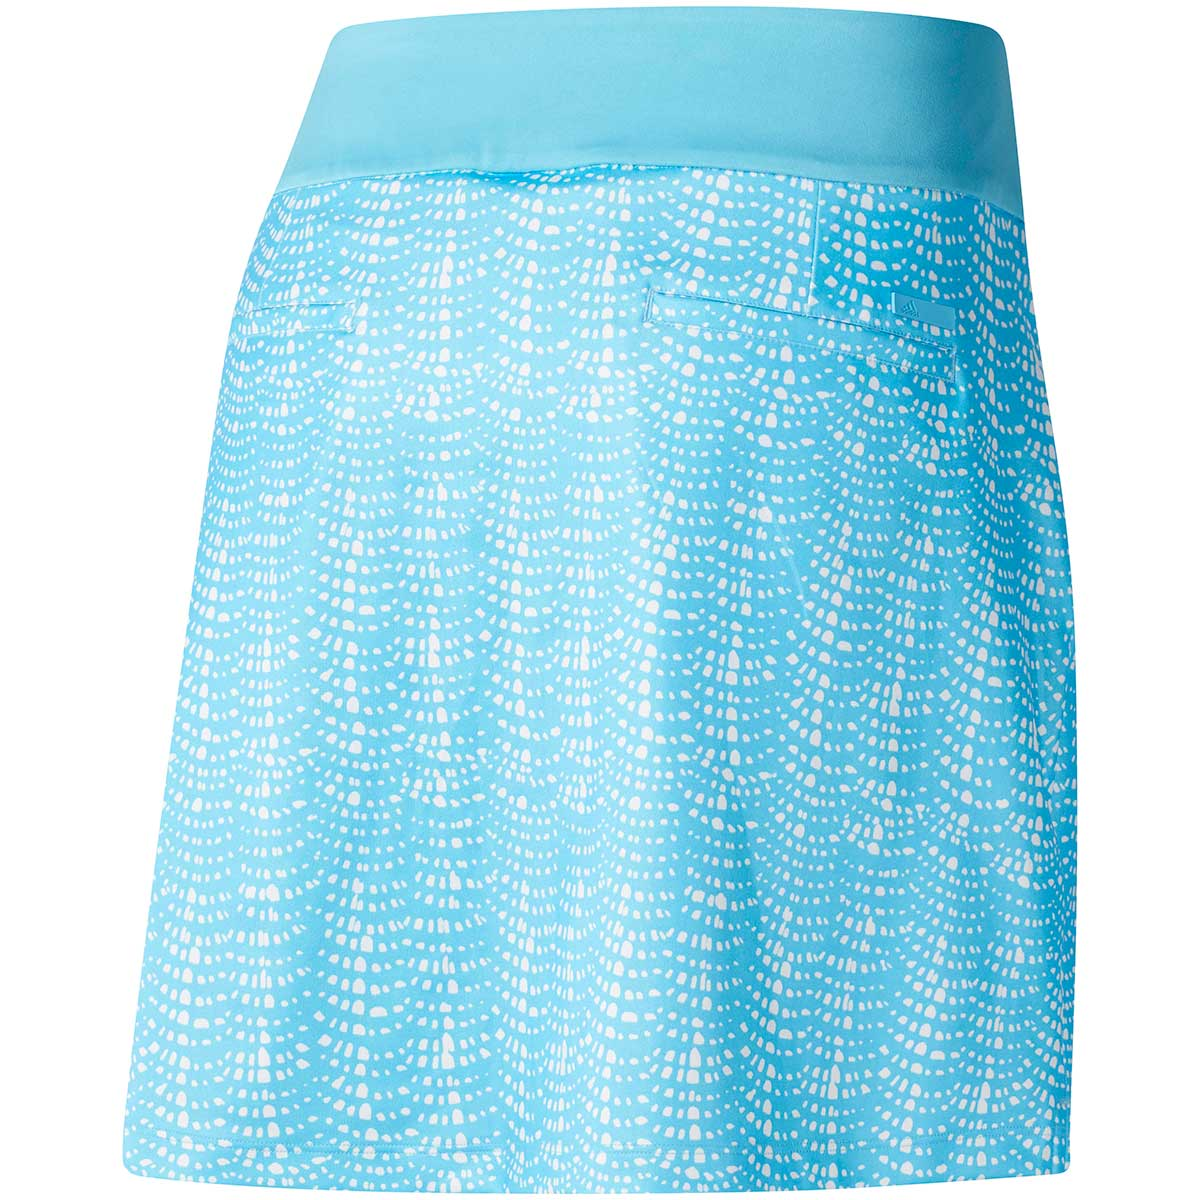 Adidas Women's Ultimate Printed Cyan/White Sport Skort